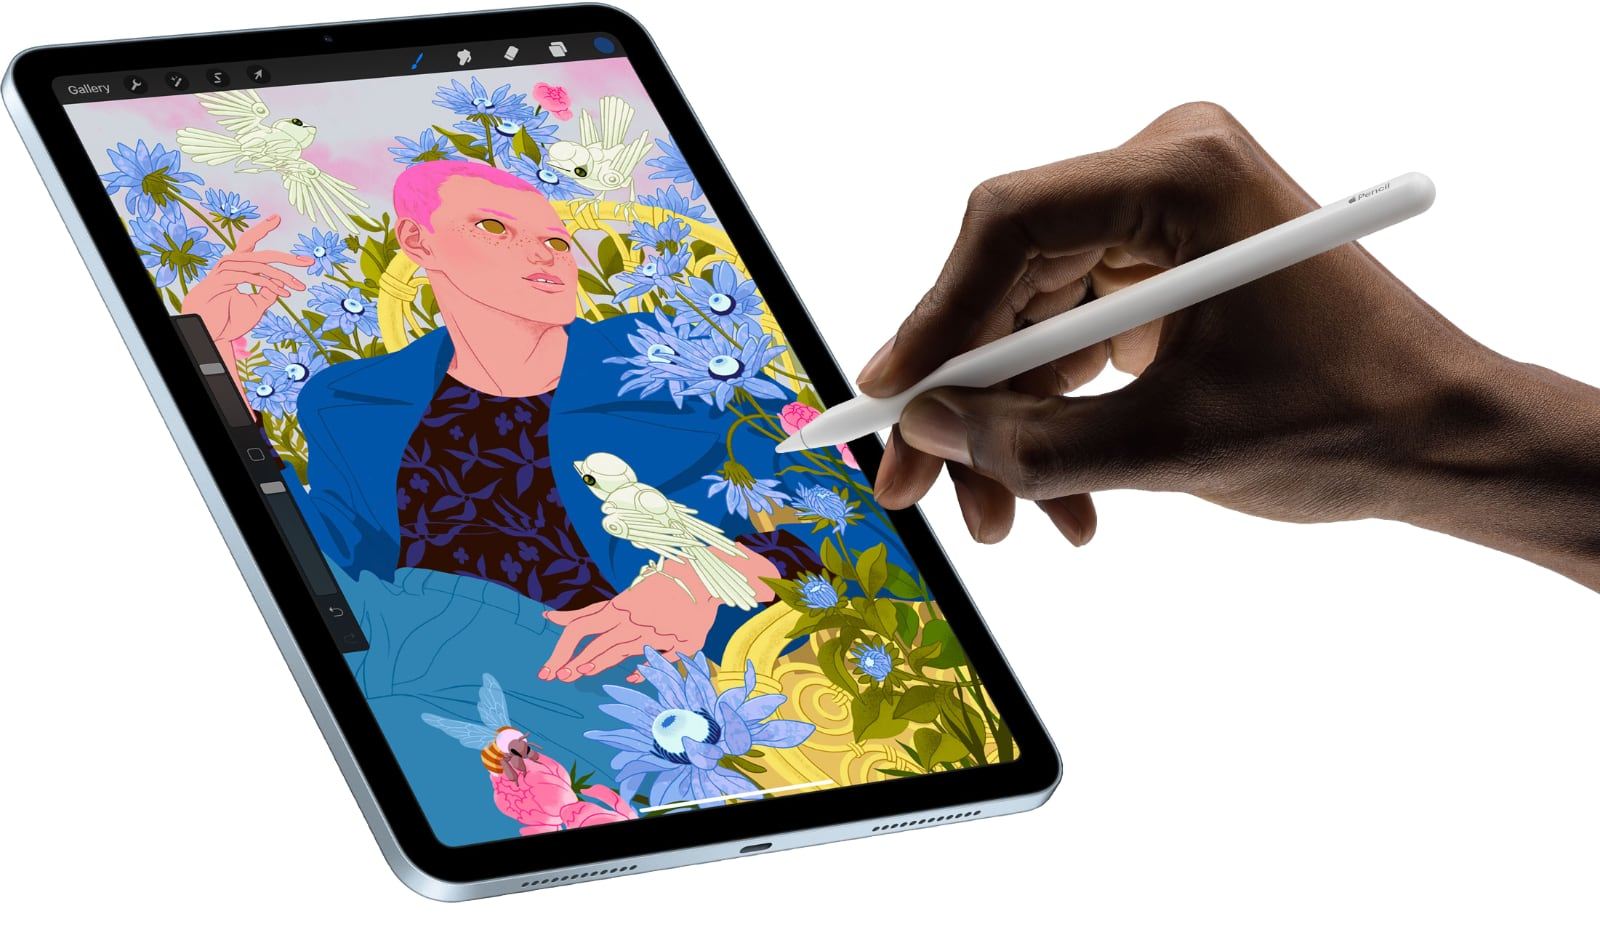 iPad Air : Completely Redesigned, Shipping in October